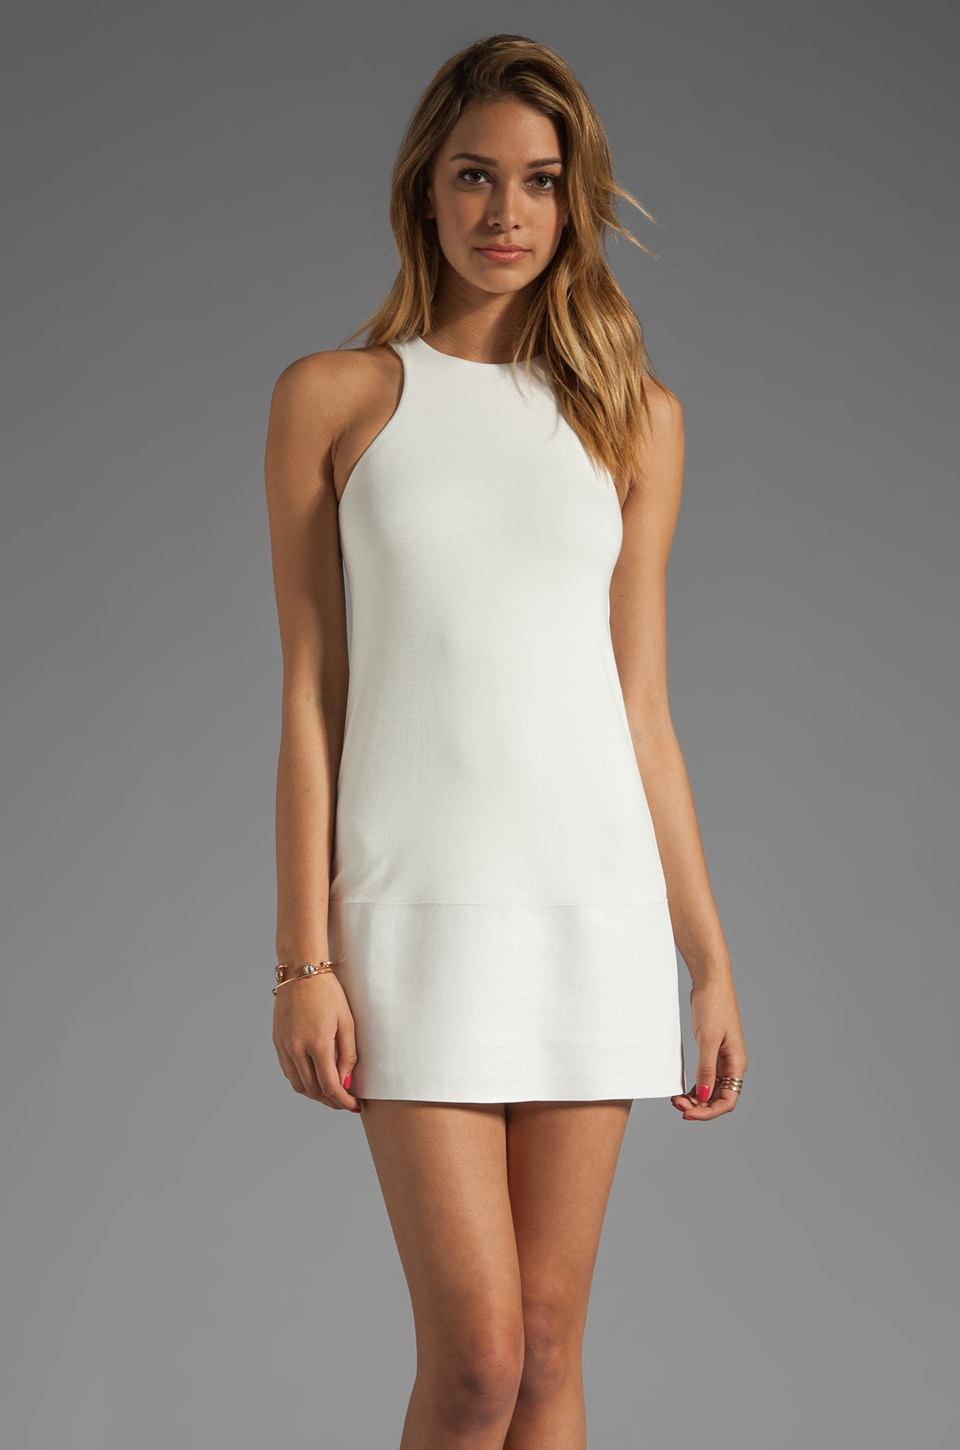 Bailey 44 Don Quixote Dress in Blanco